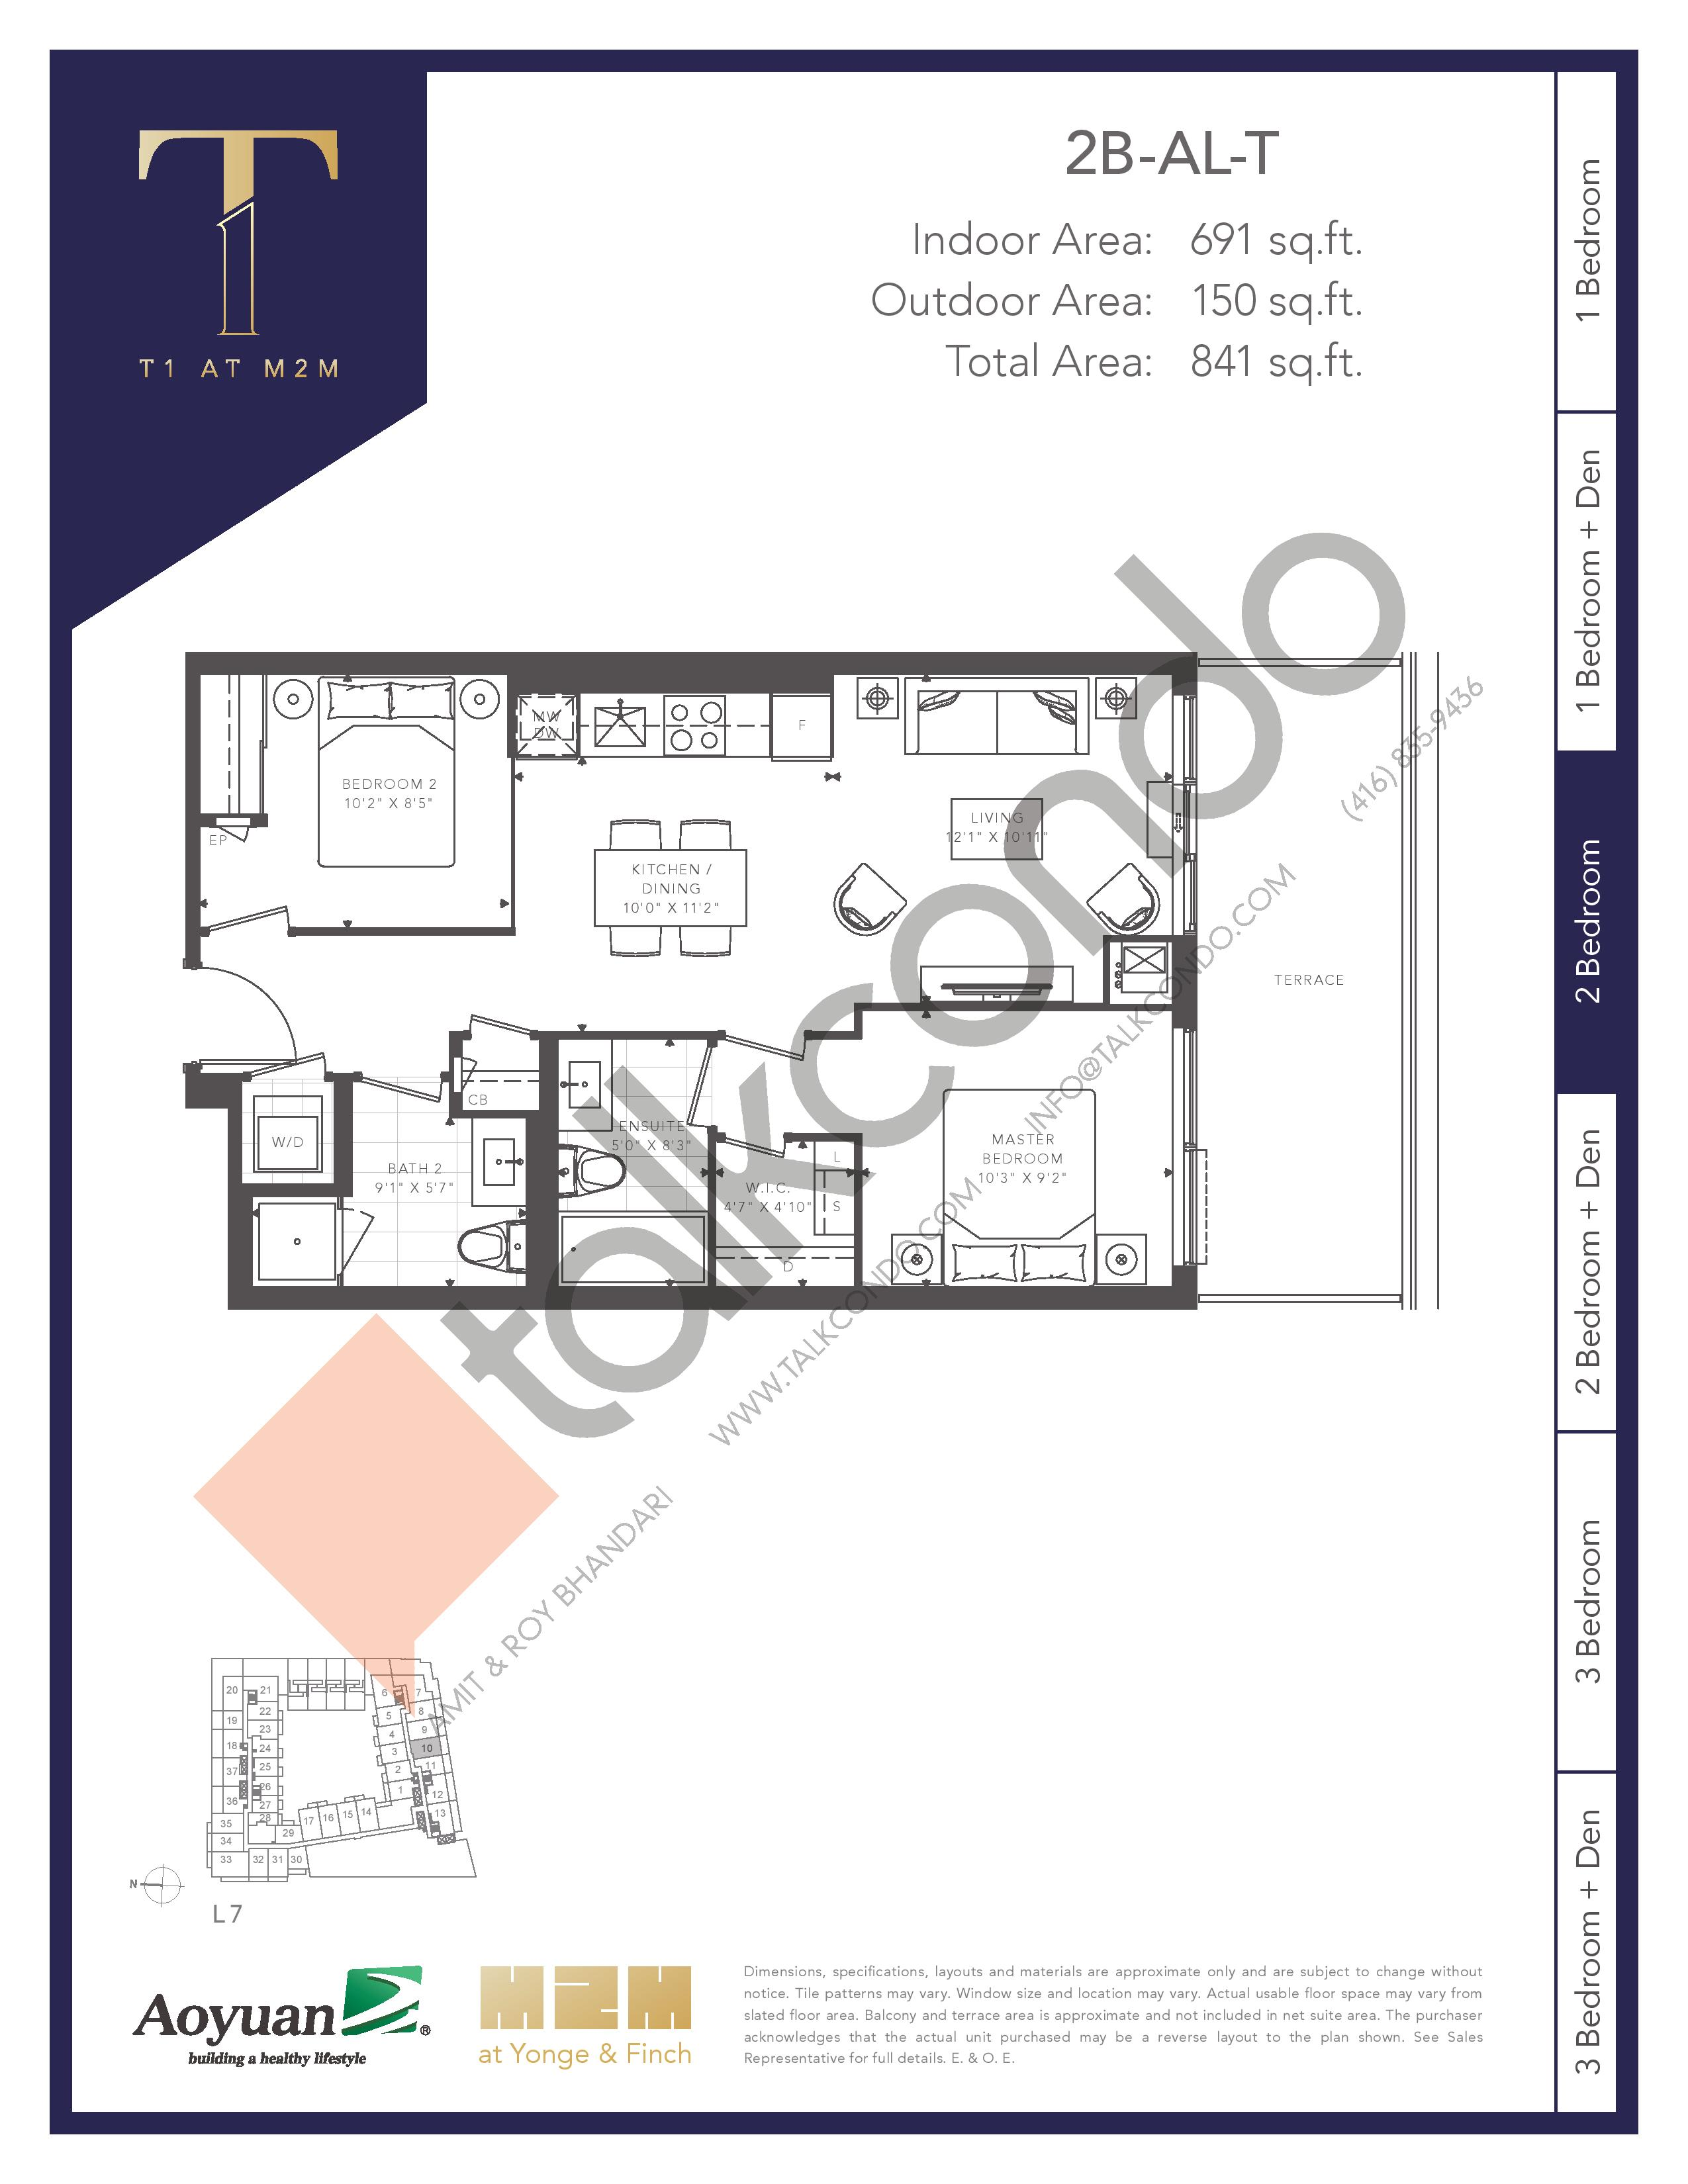 2B-AL-T (Tower) Floor Plan at T1 at M2M Condos - 691 sq.ft